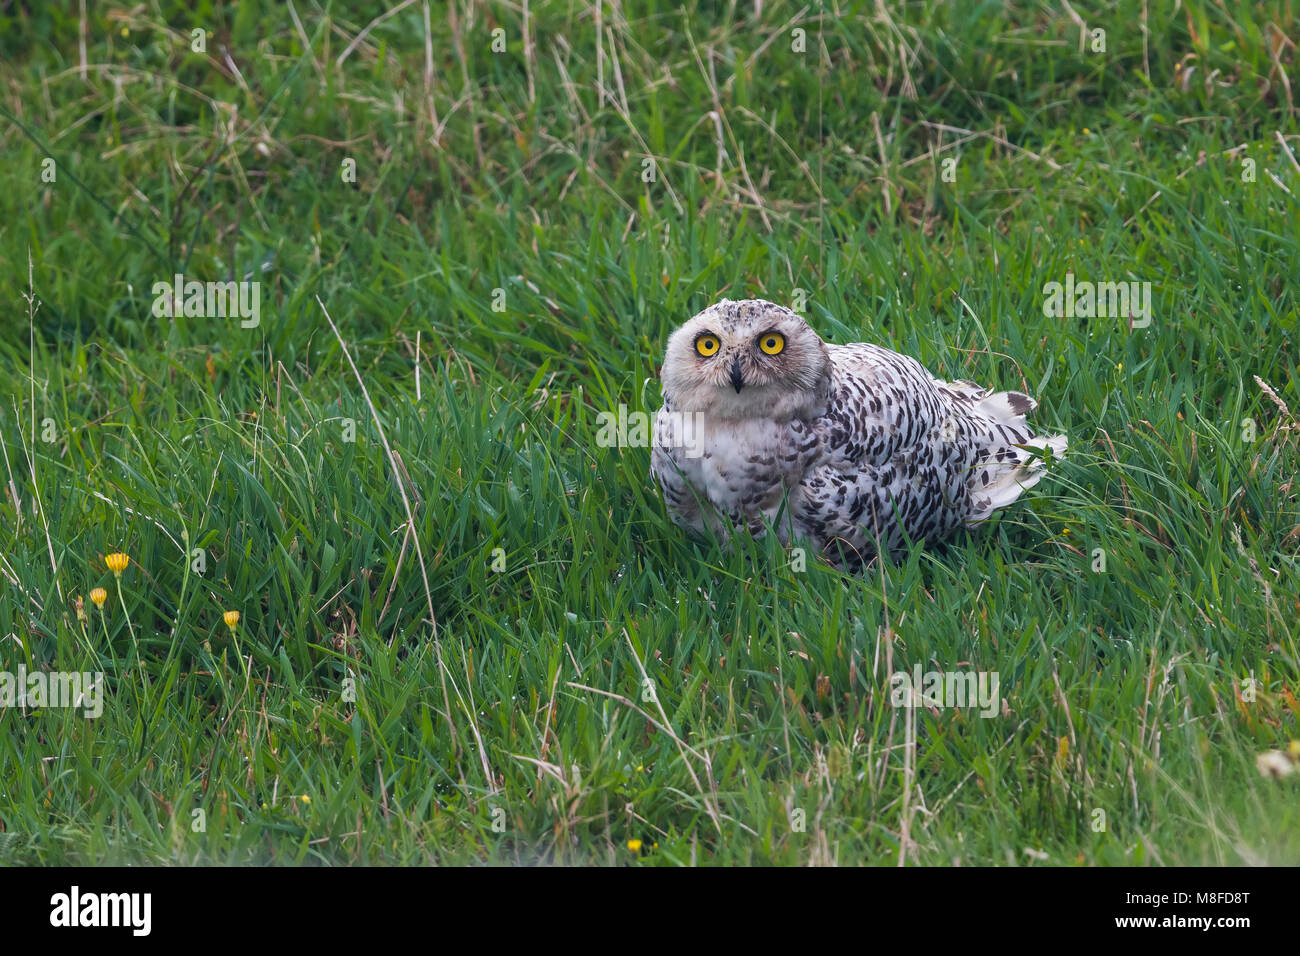 Sneeuwuil zittend in gras; Snowy Owl perched in gras - Stock Image